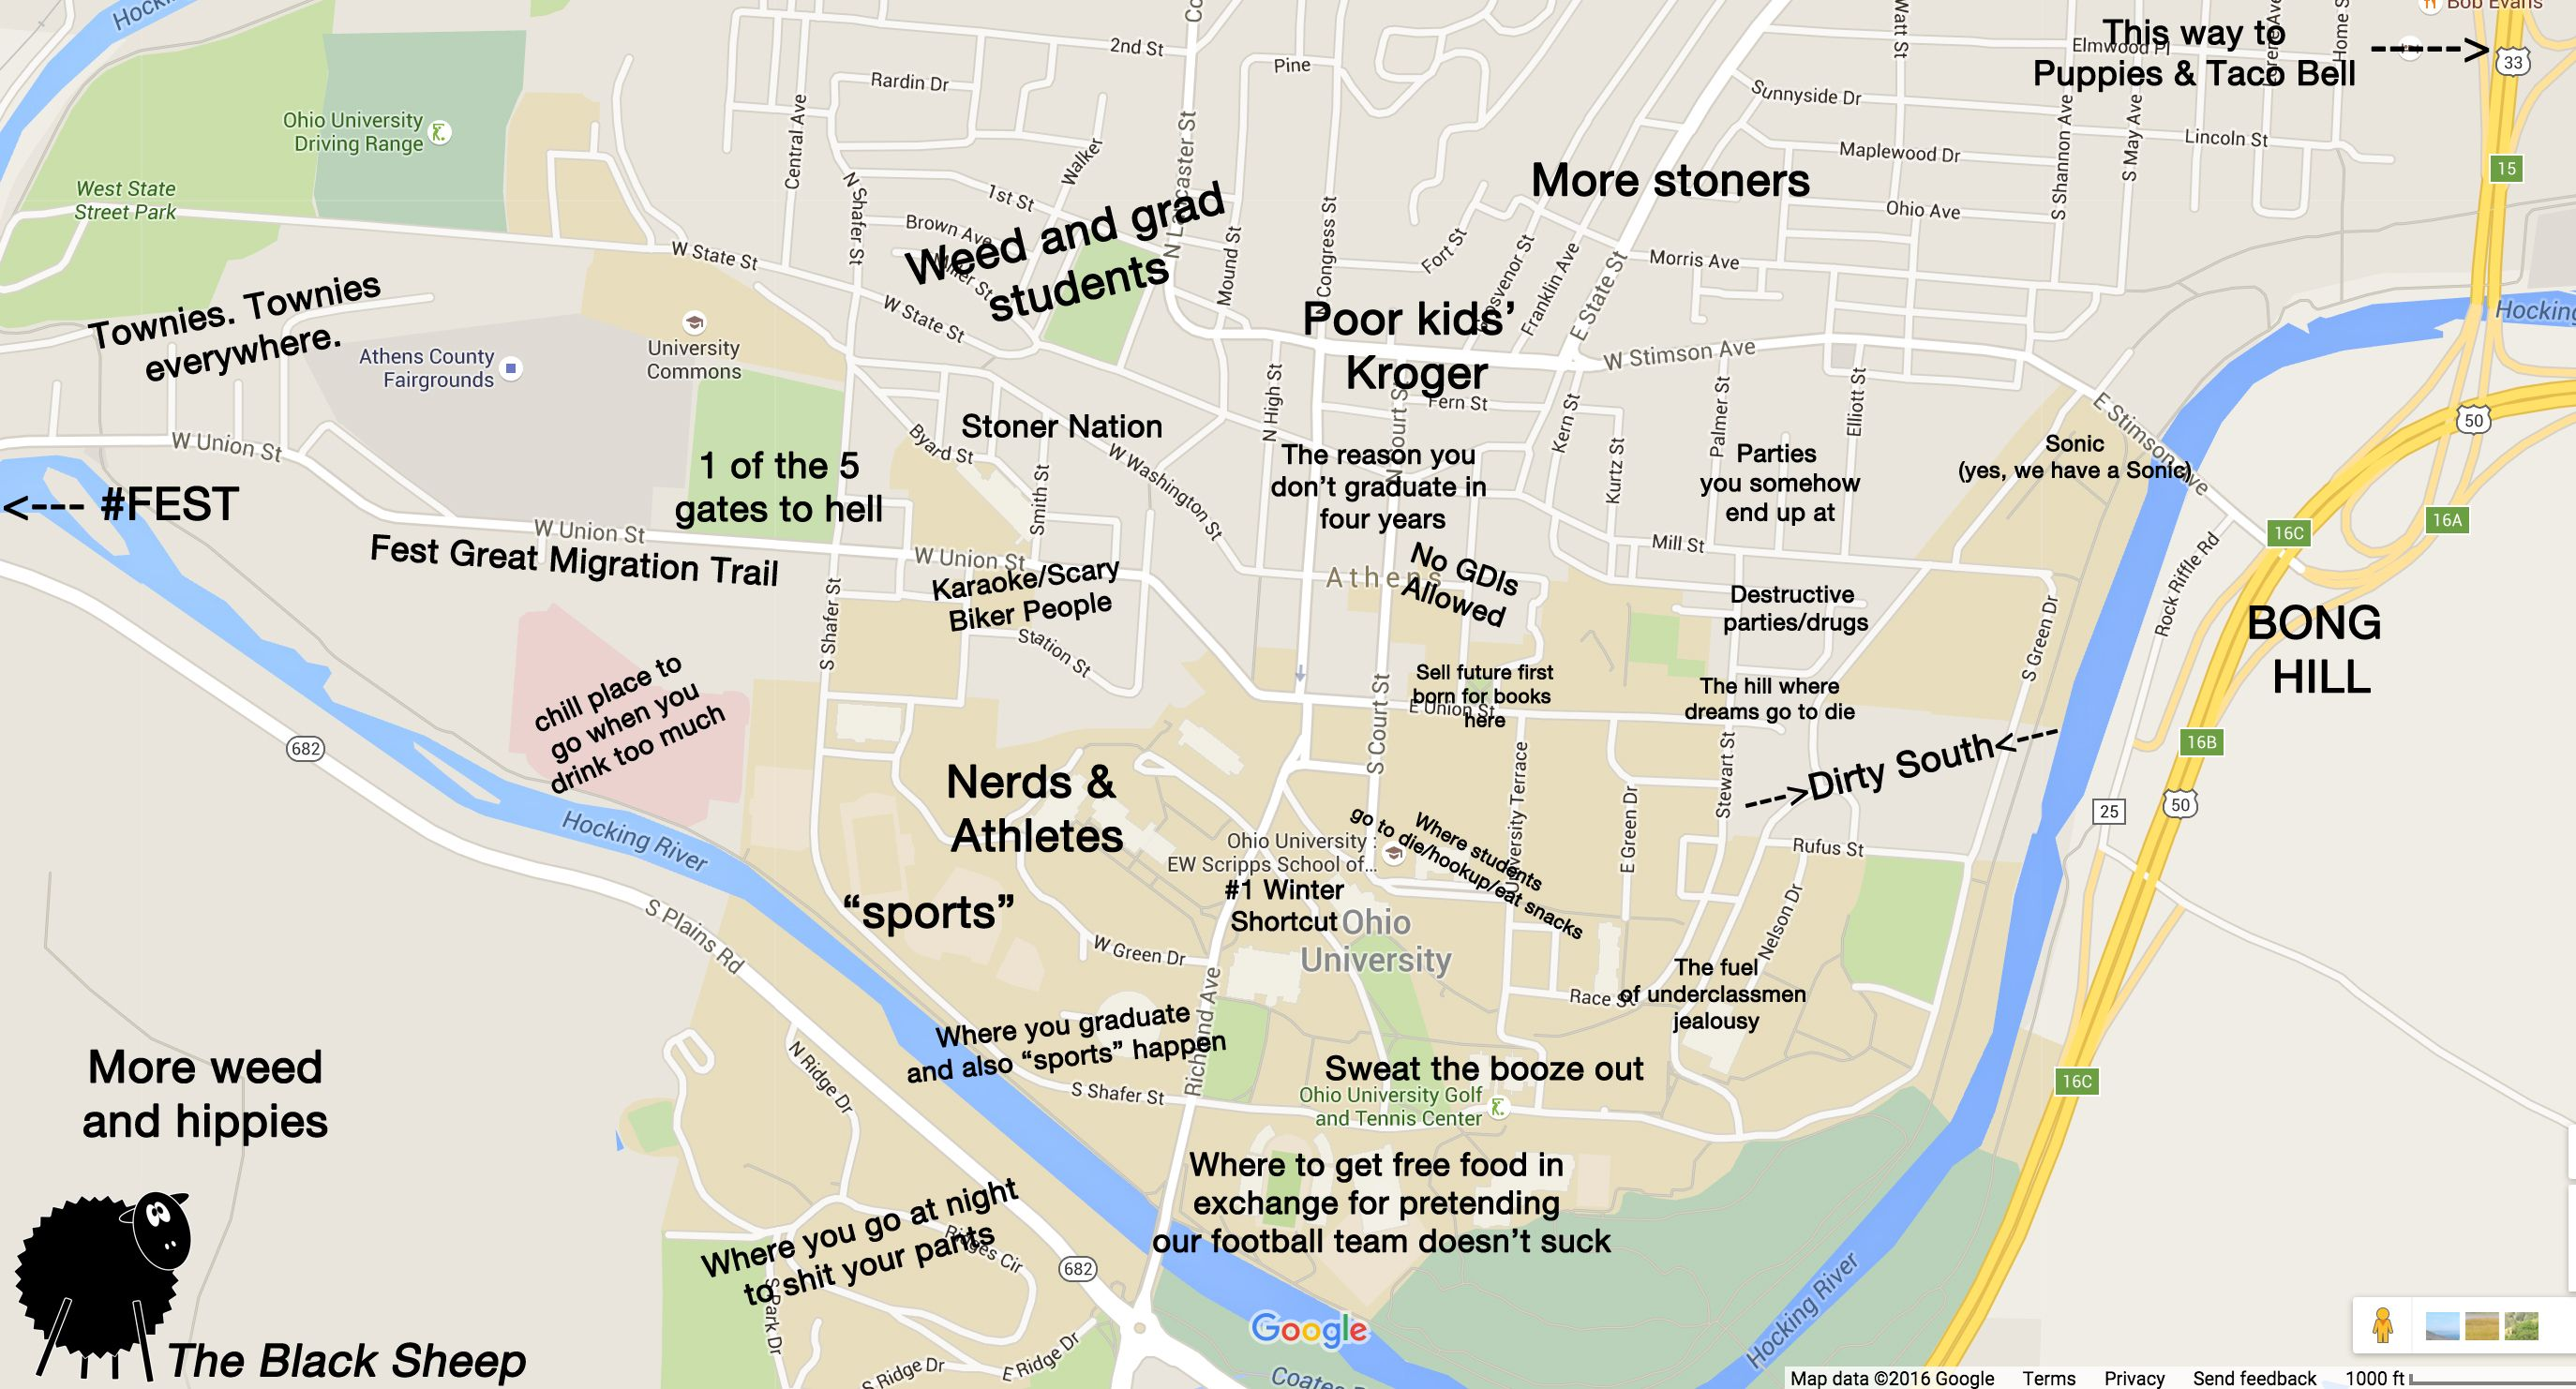 Pin By The Black Sheep On Judgmental Maps Of College Campuses